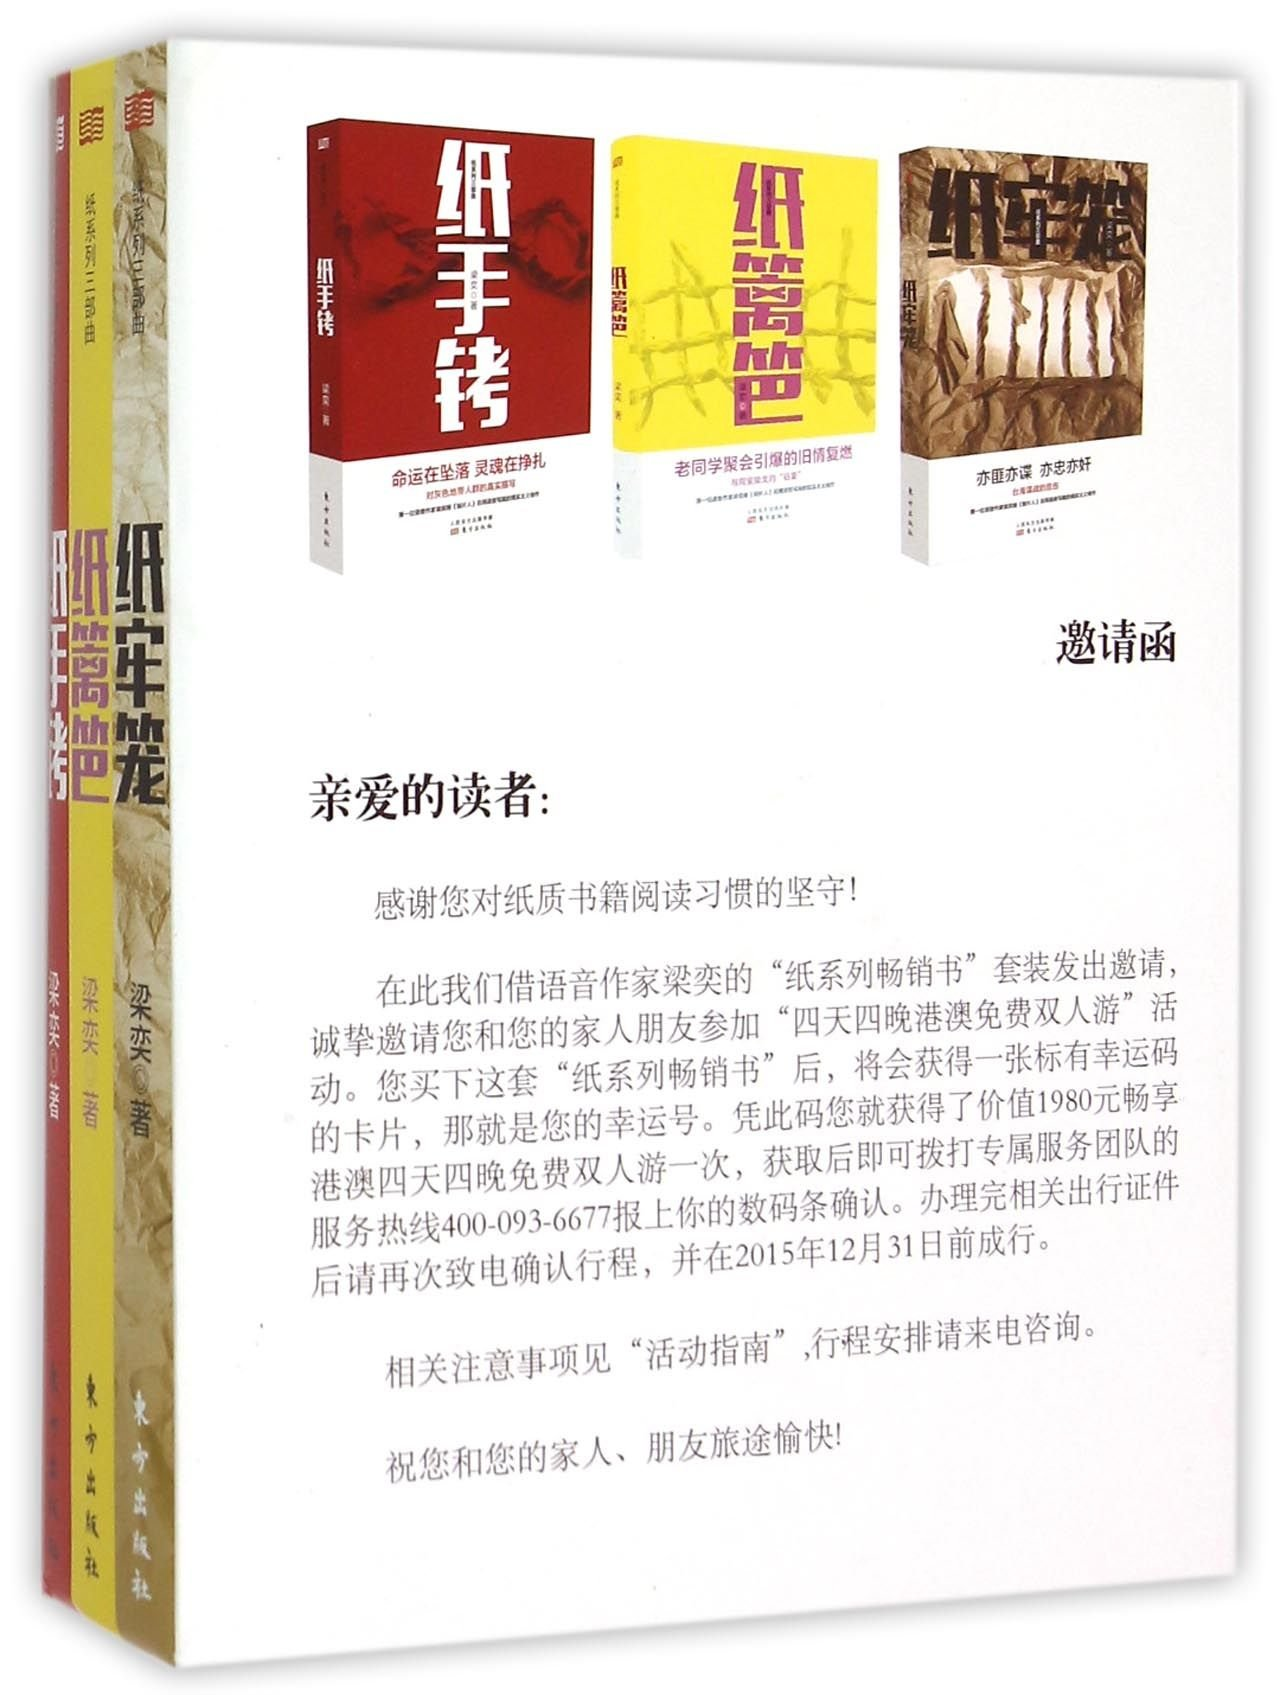 Read Online Paper Trilogy (Three Volumes) (Chinese Edition) PDF